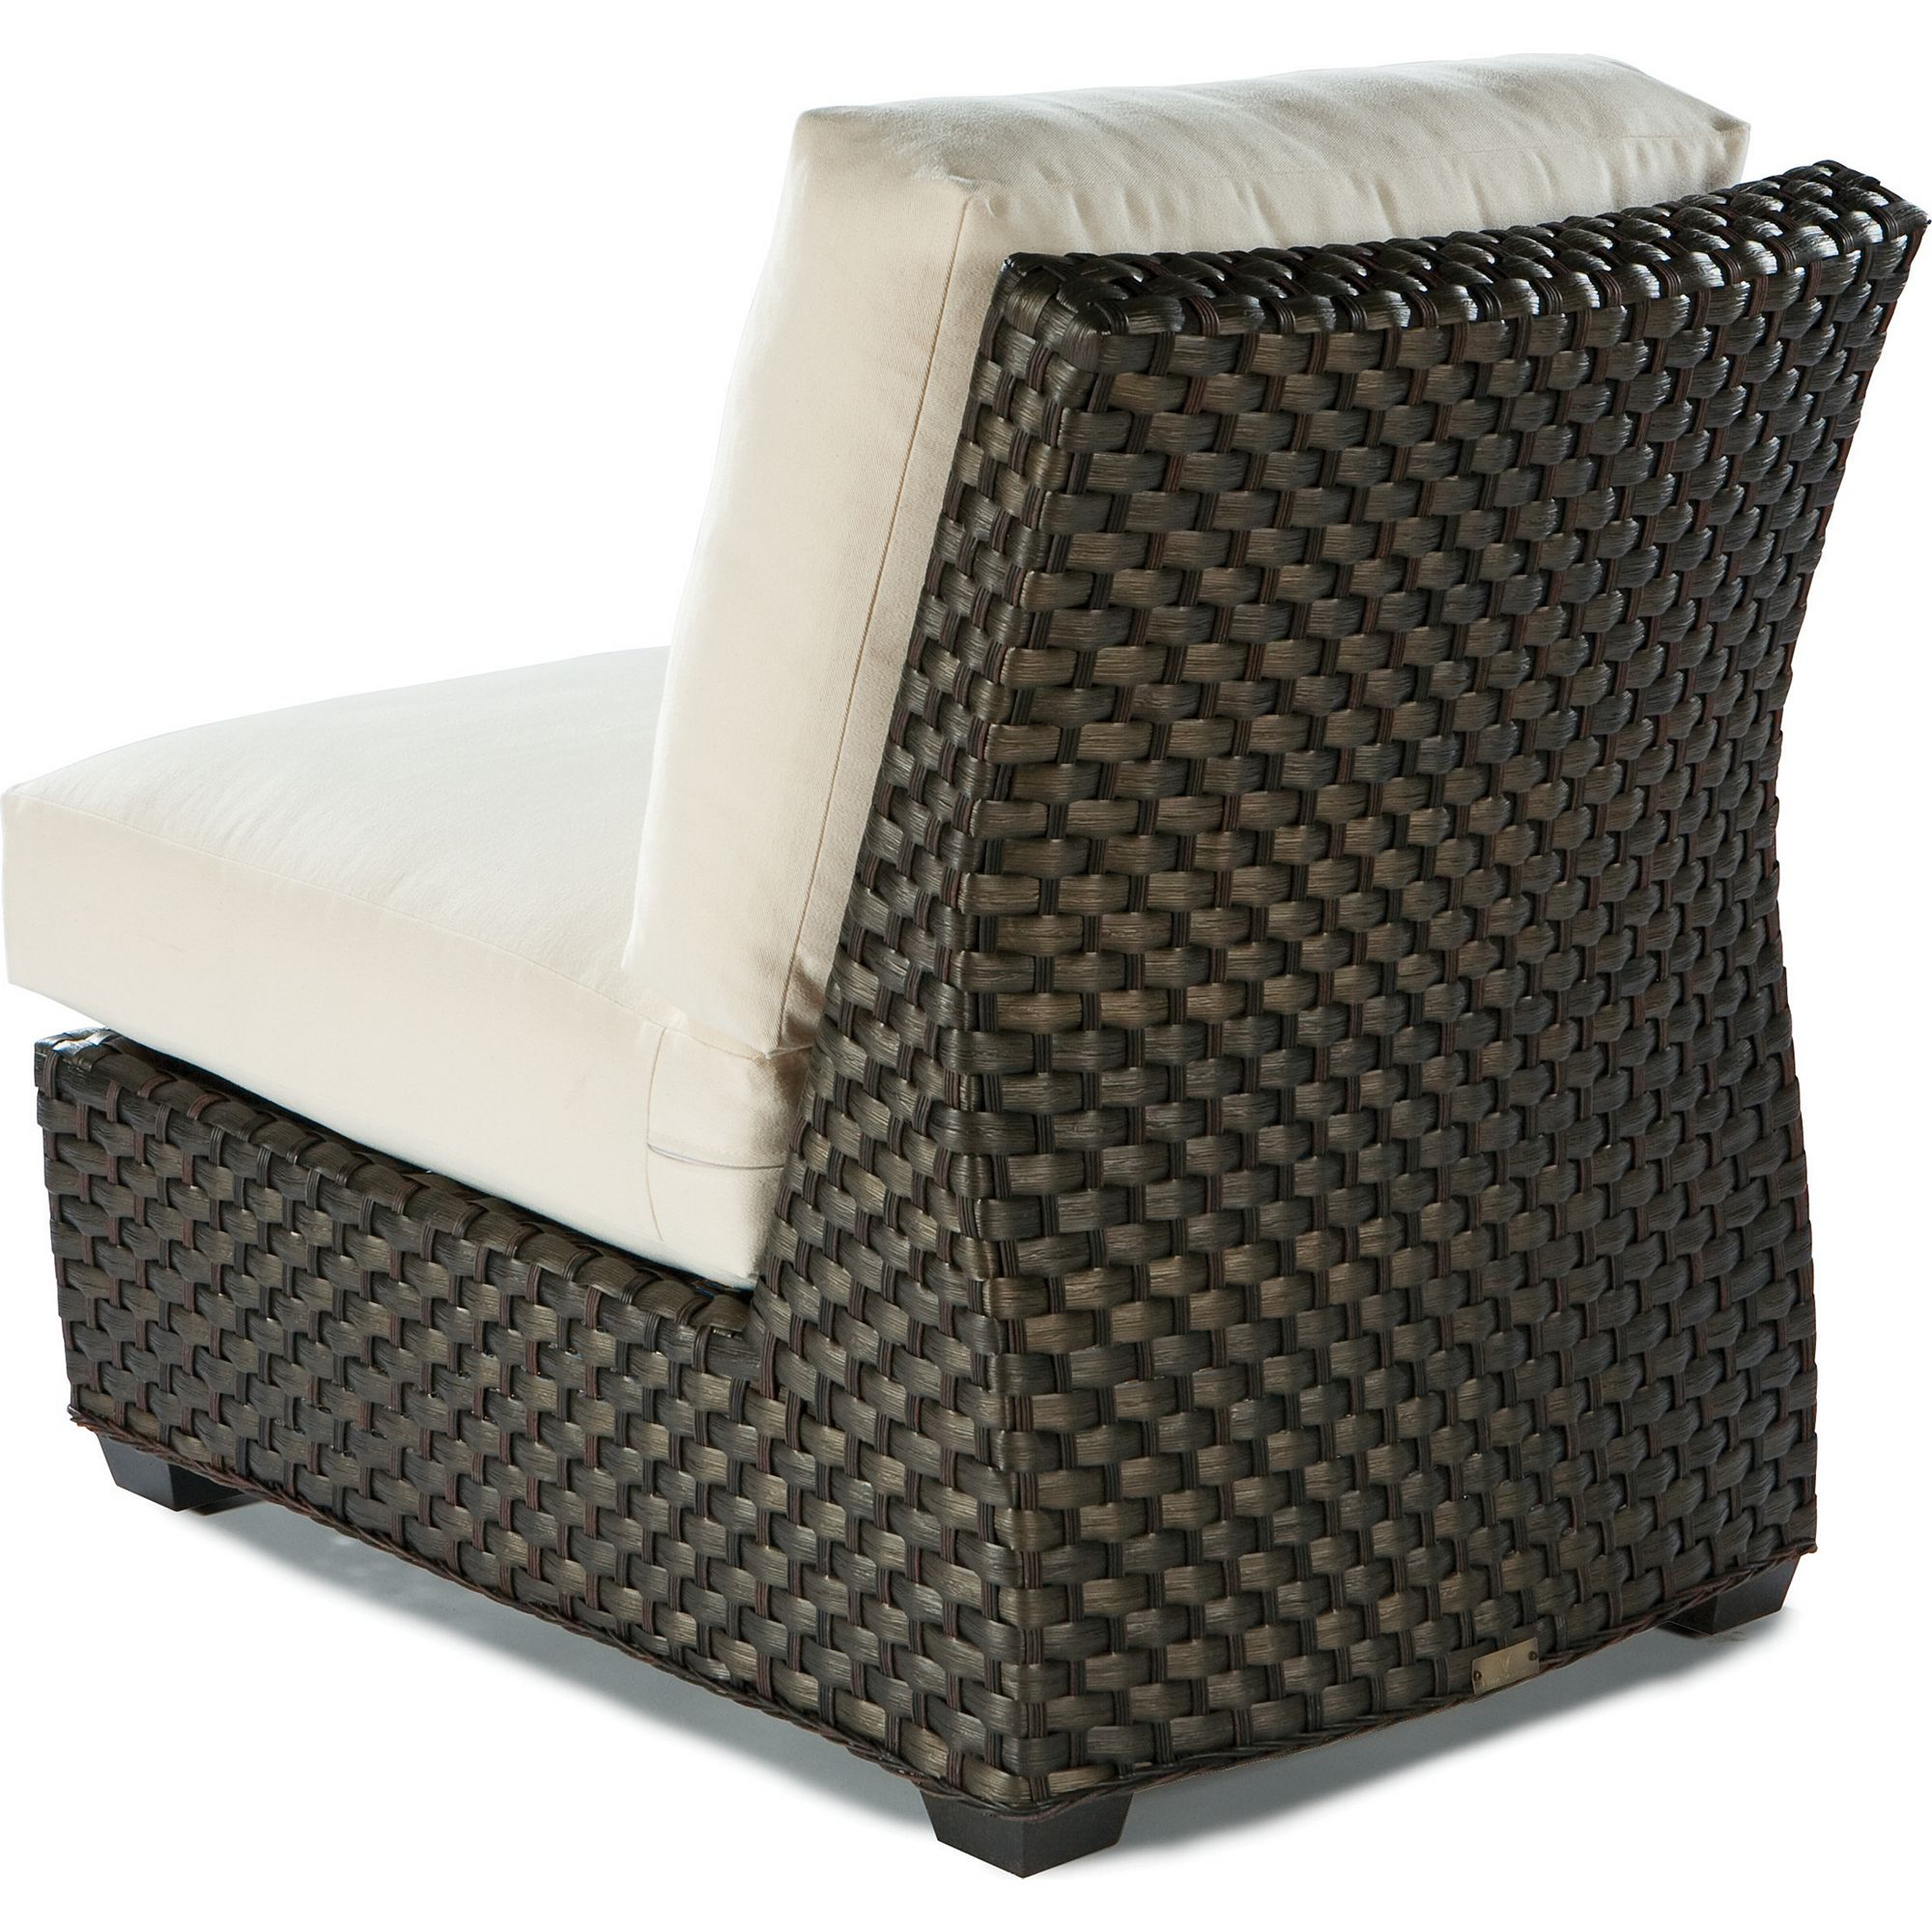 Leeward Outdoor Armless Lounge Chair 786 10 Sofas And